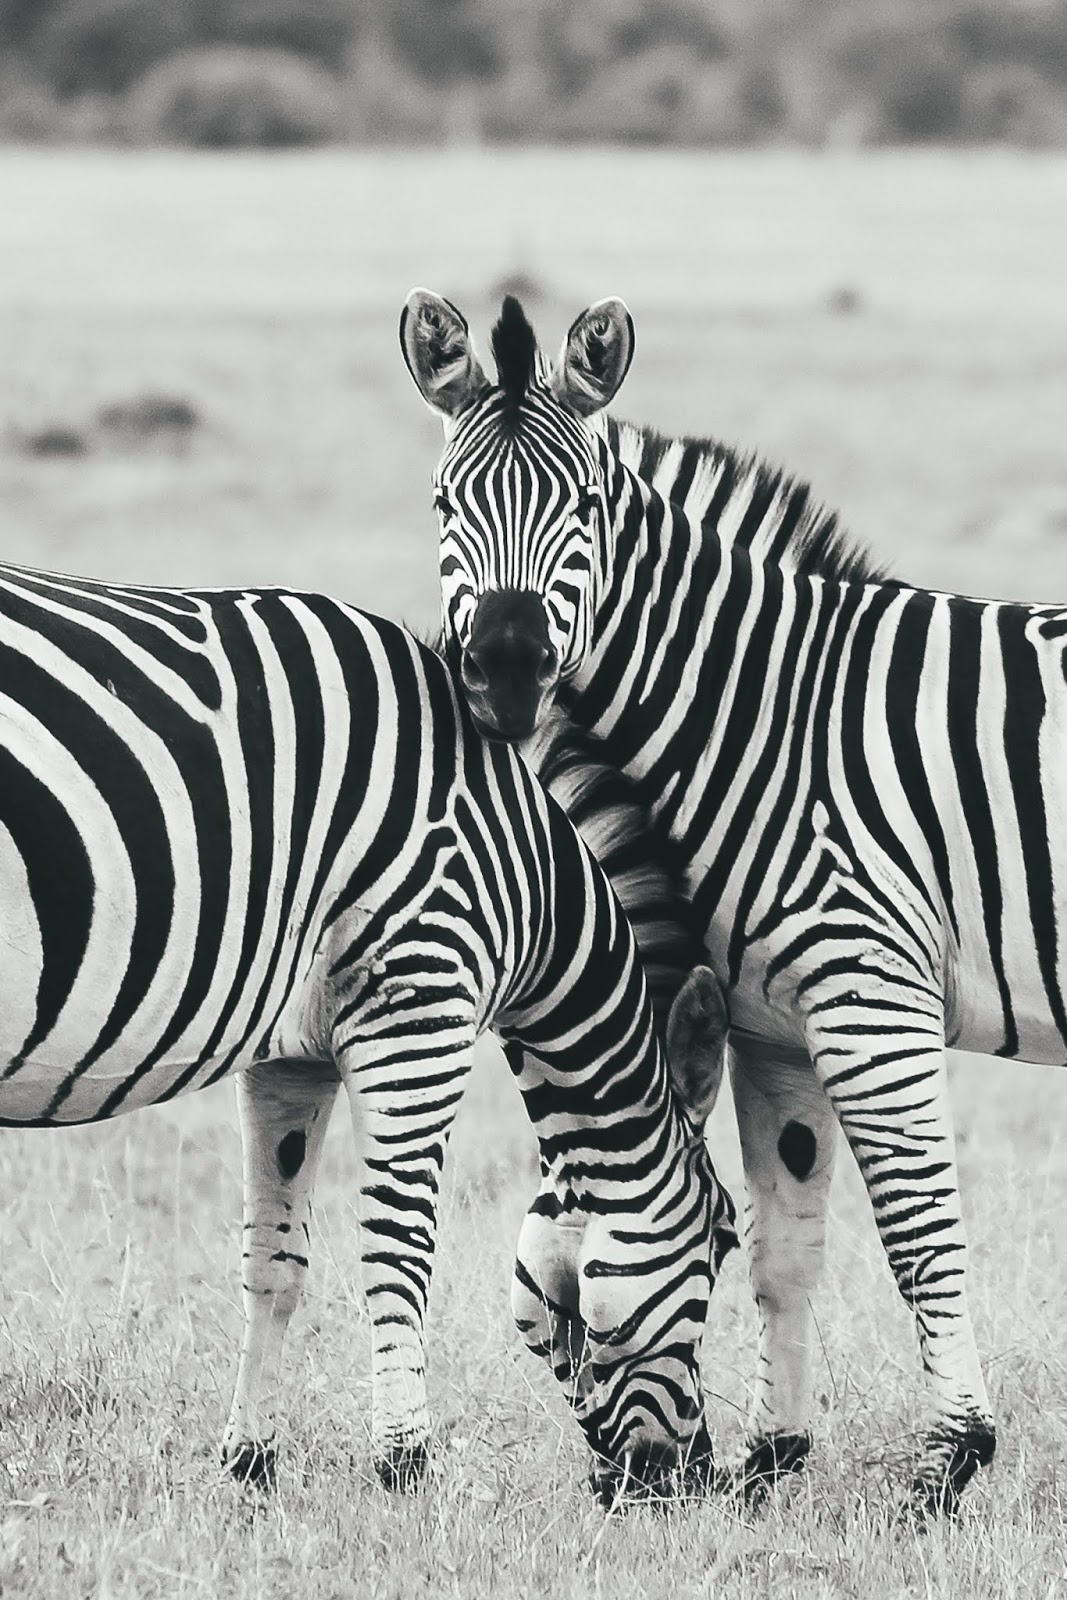 Photo Dairy: Africa in Black and White